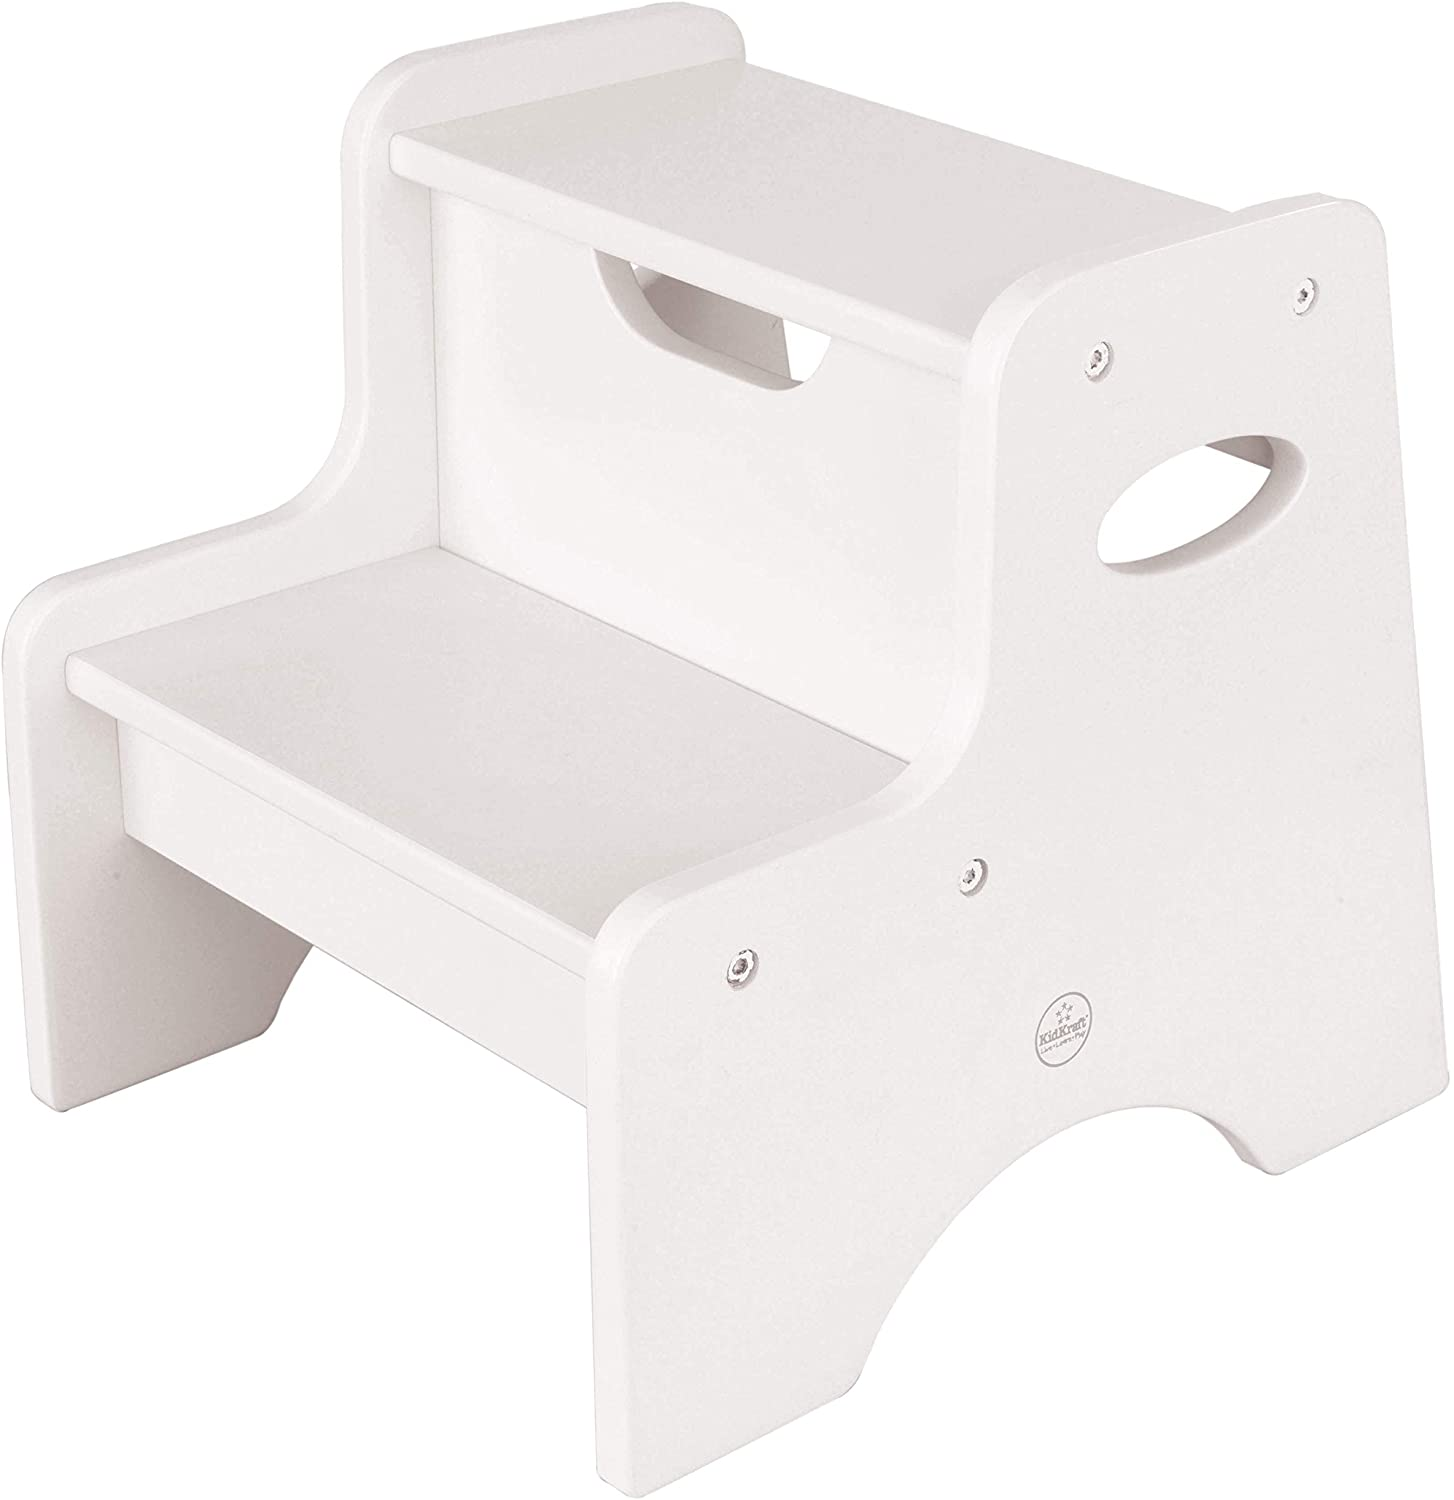 KidKraft Children's Two Step Wooden Stool